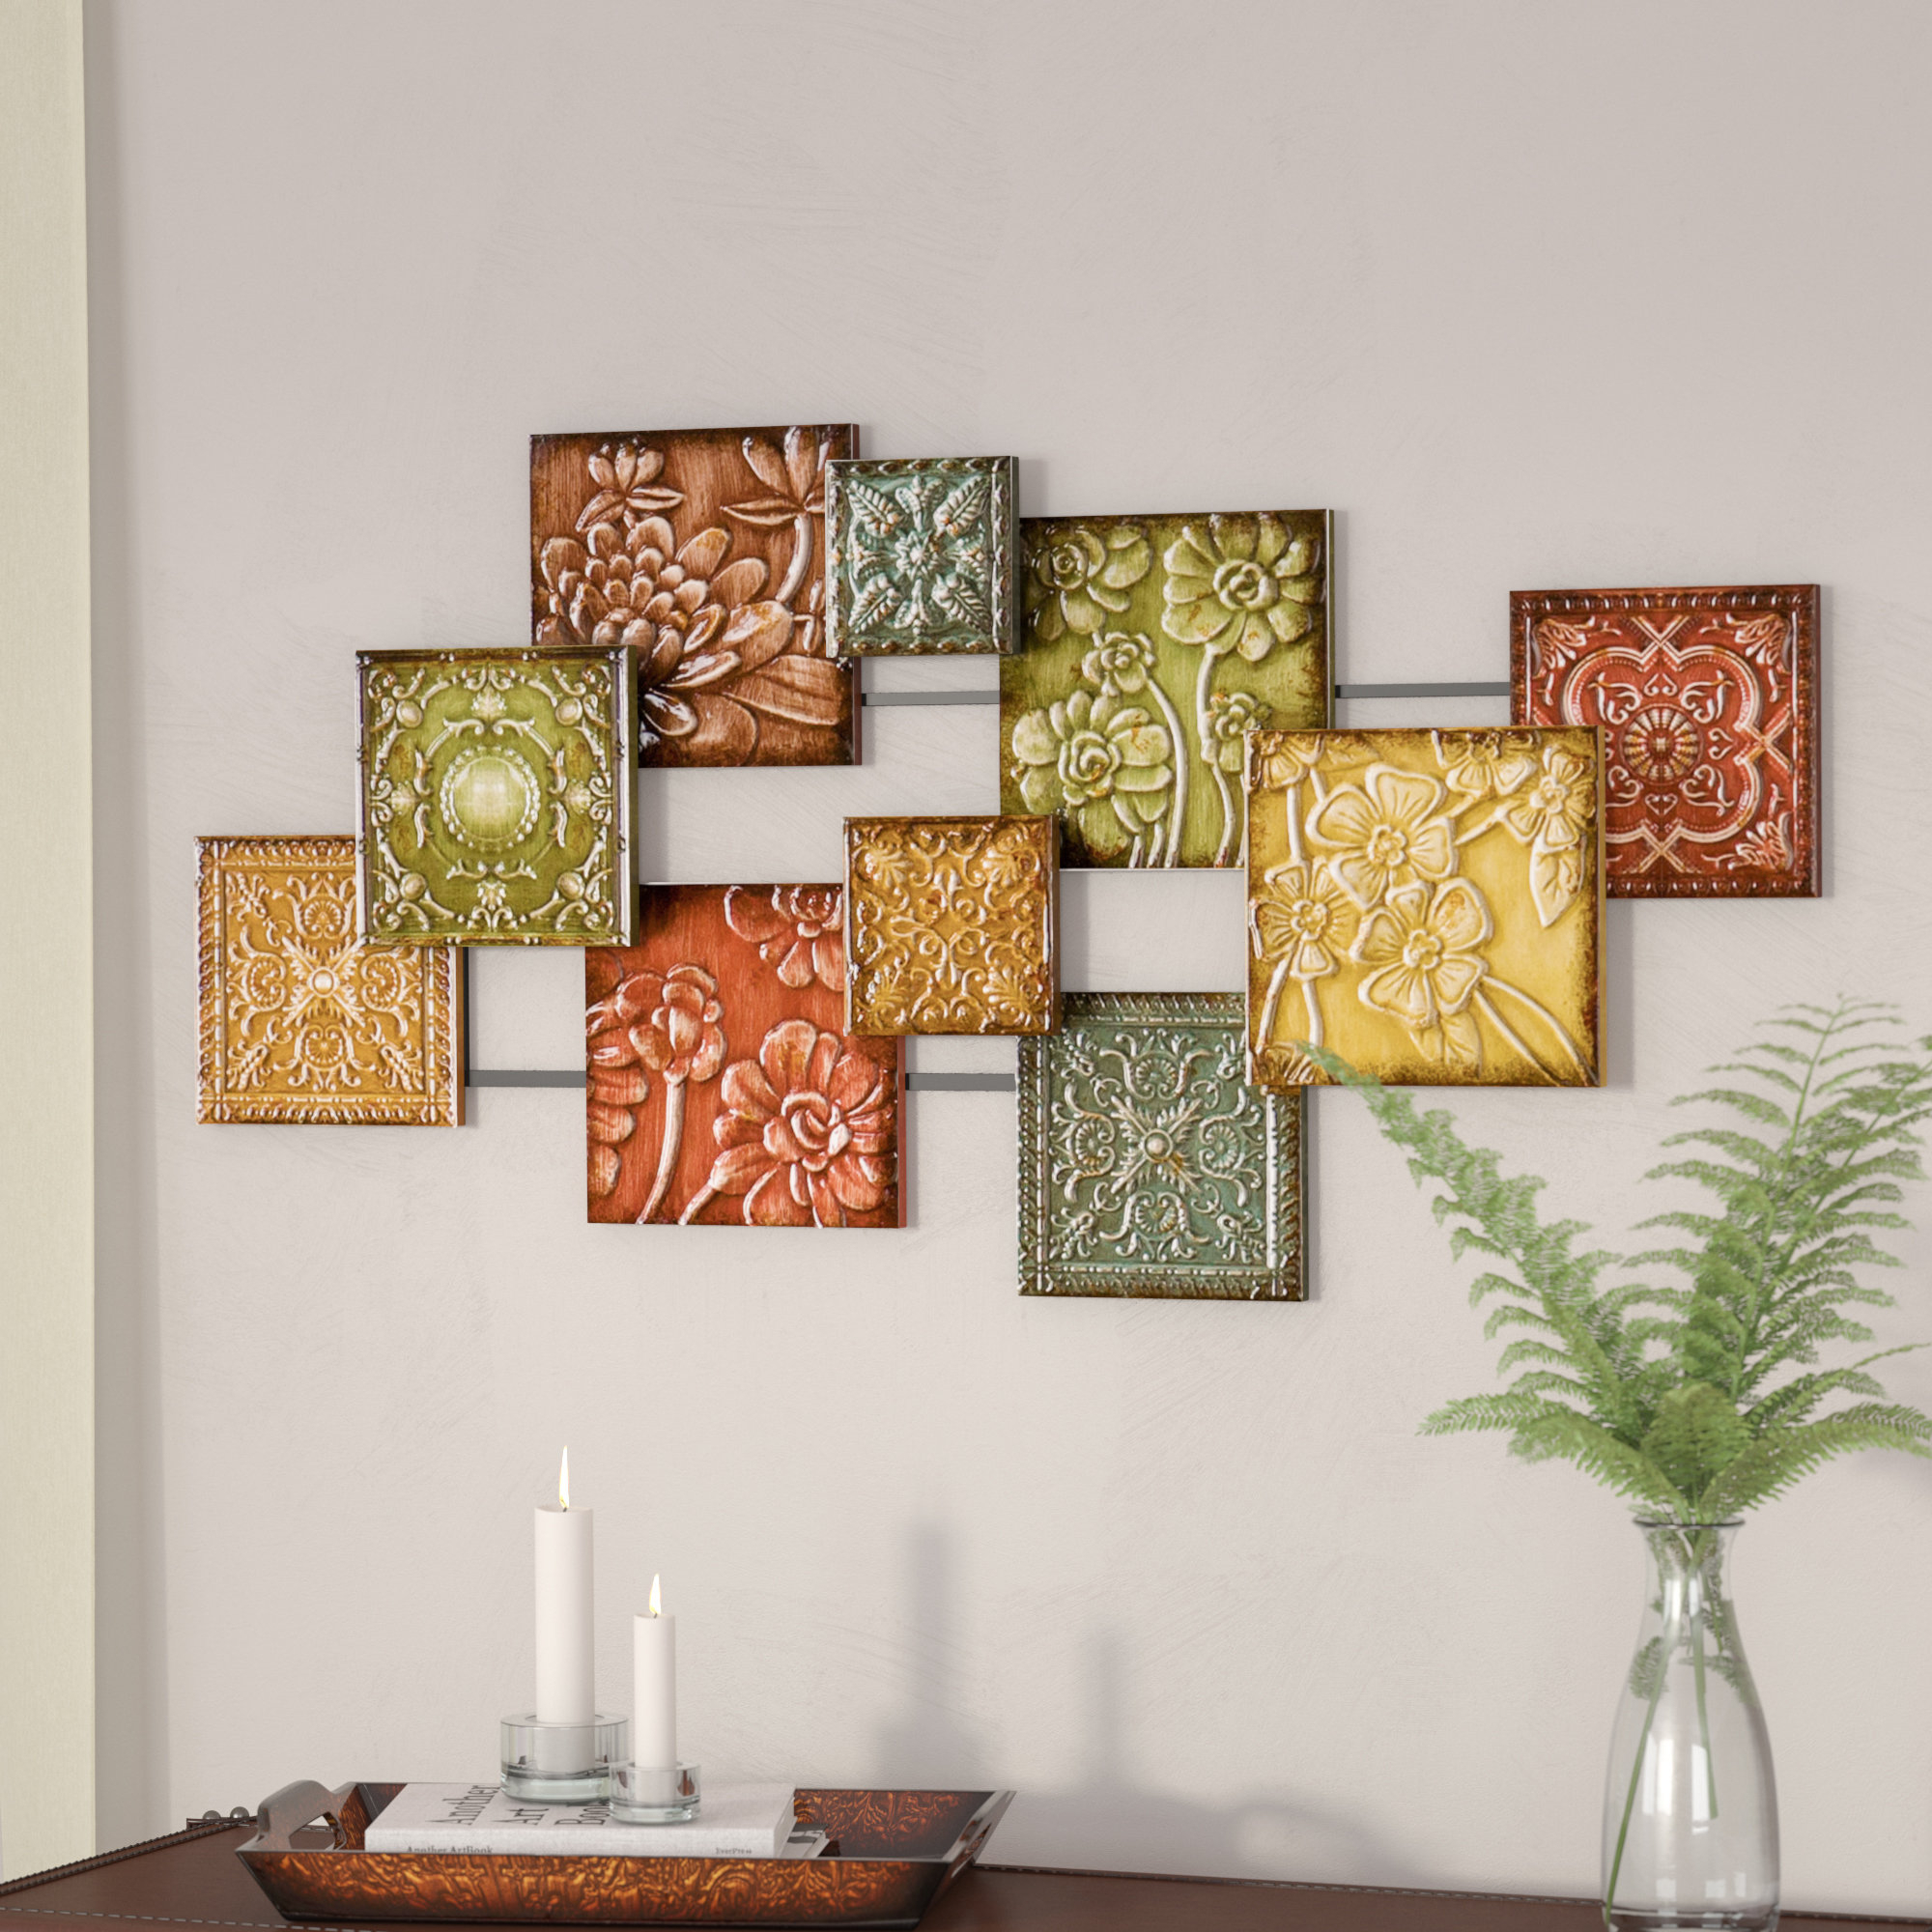 Wonderful World Wall Decor | Wayfair Intended For Wonderful World Wall Decor By Latitude Run (View 6 of 30)